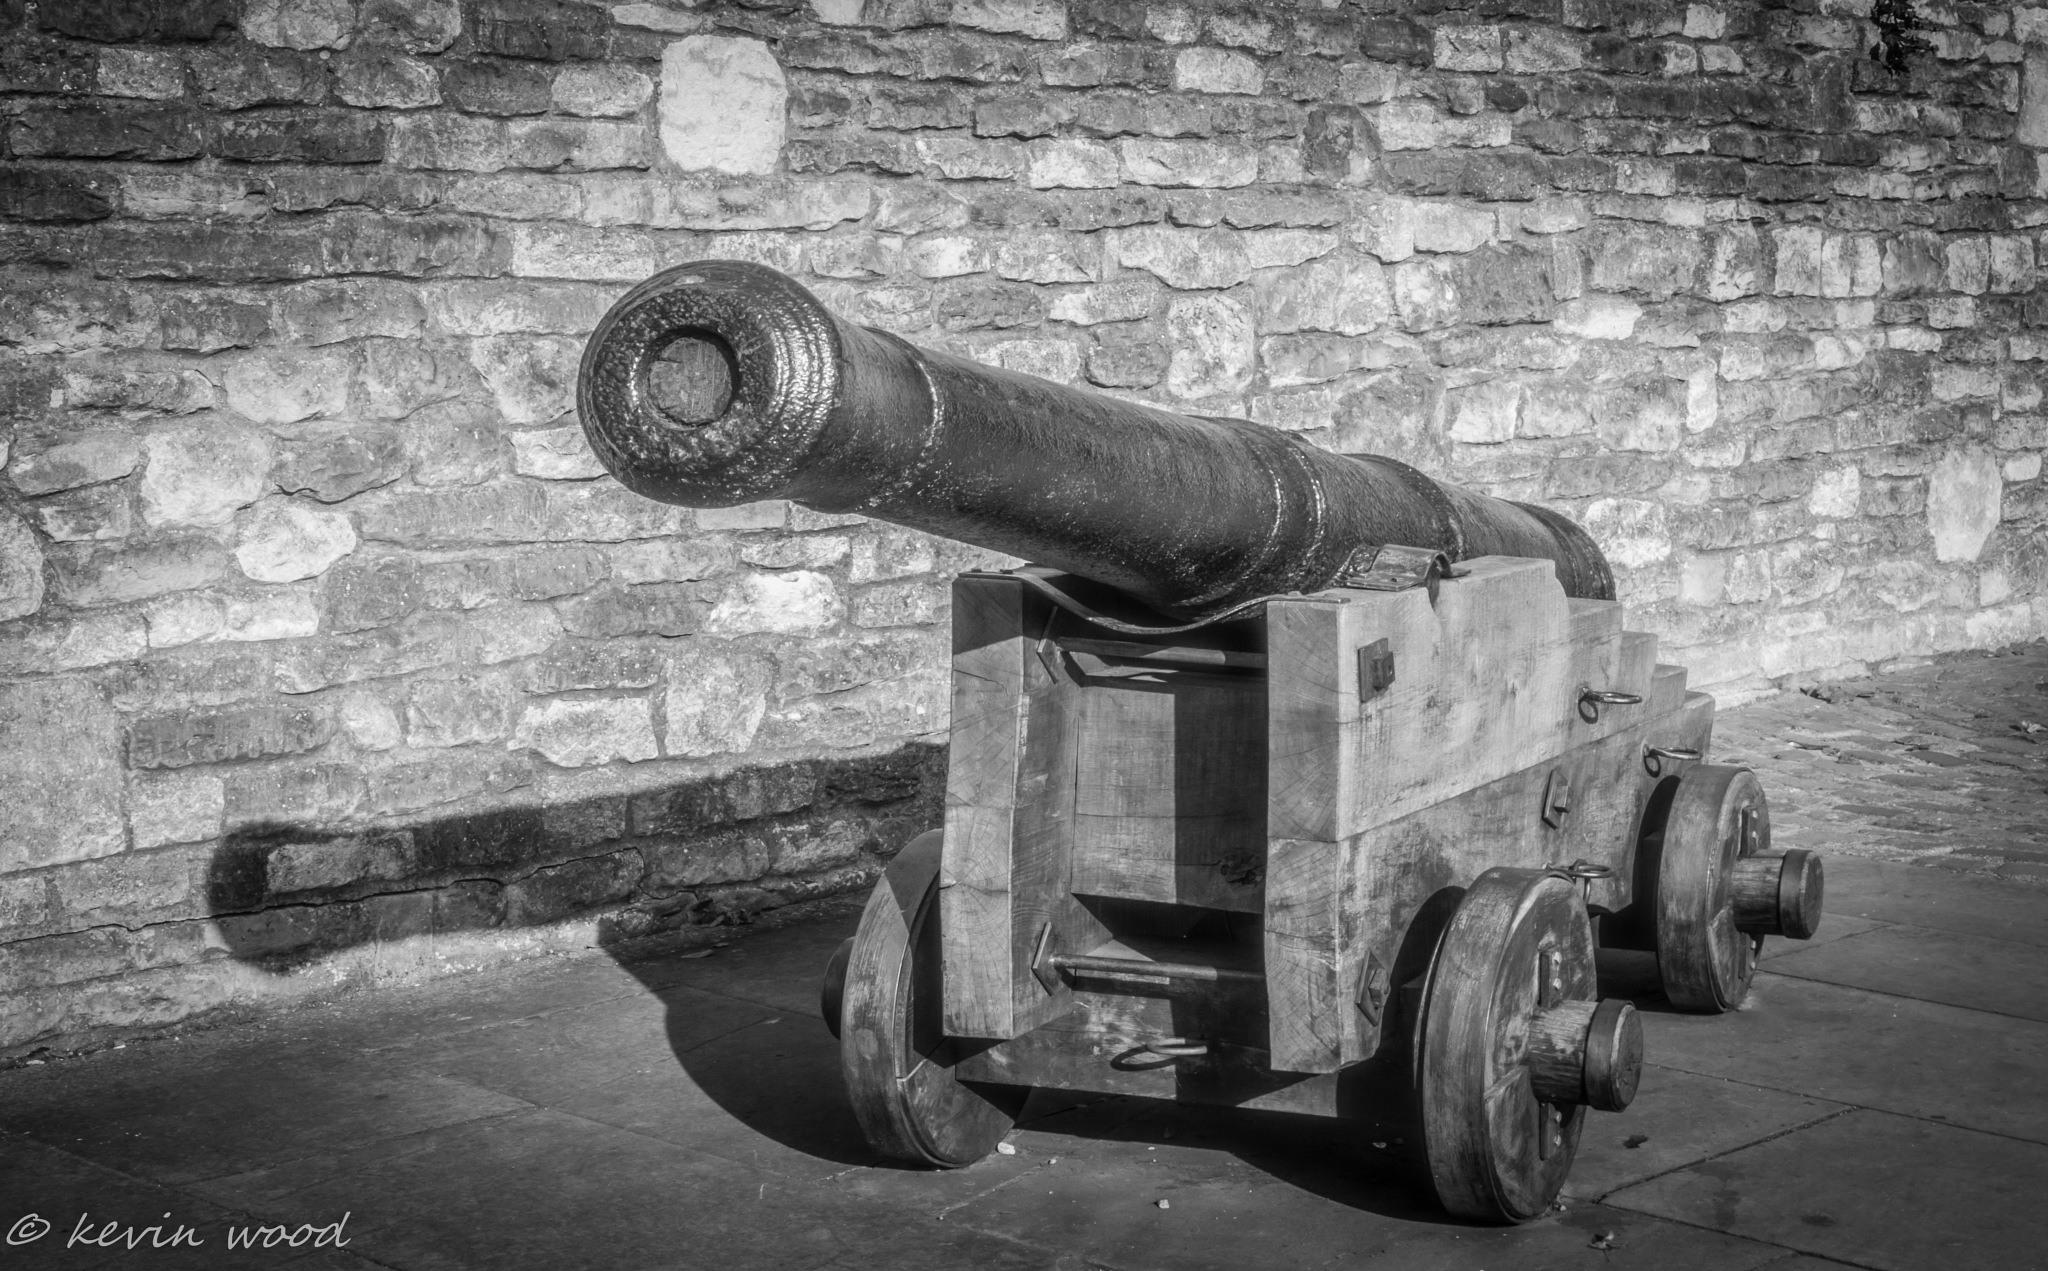 Cannon by kevin.wood.359126